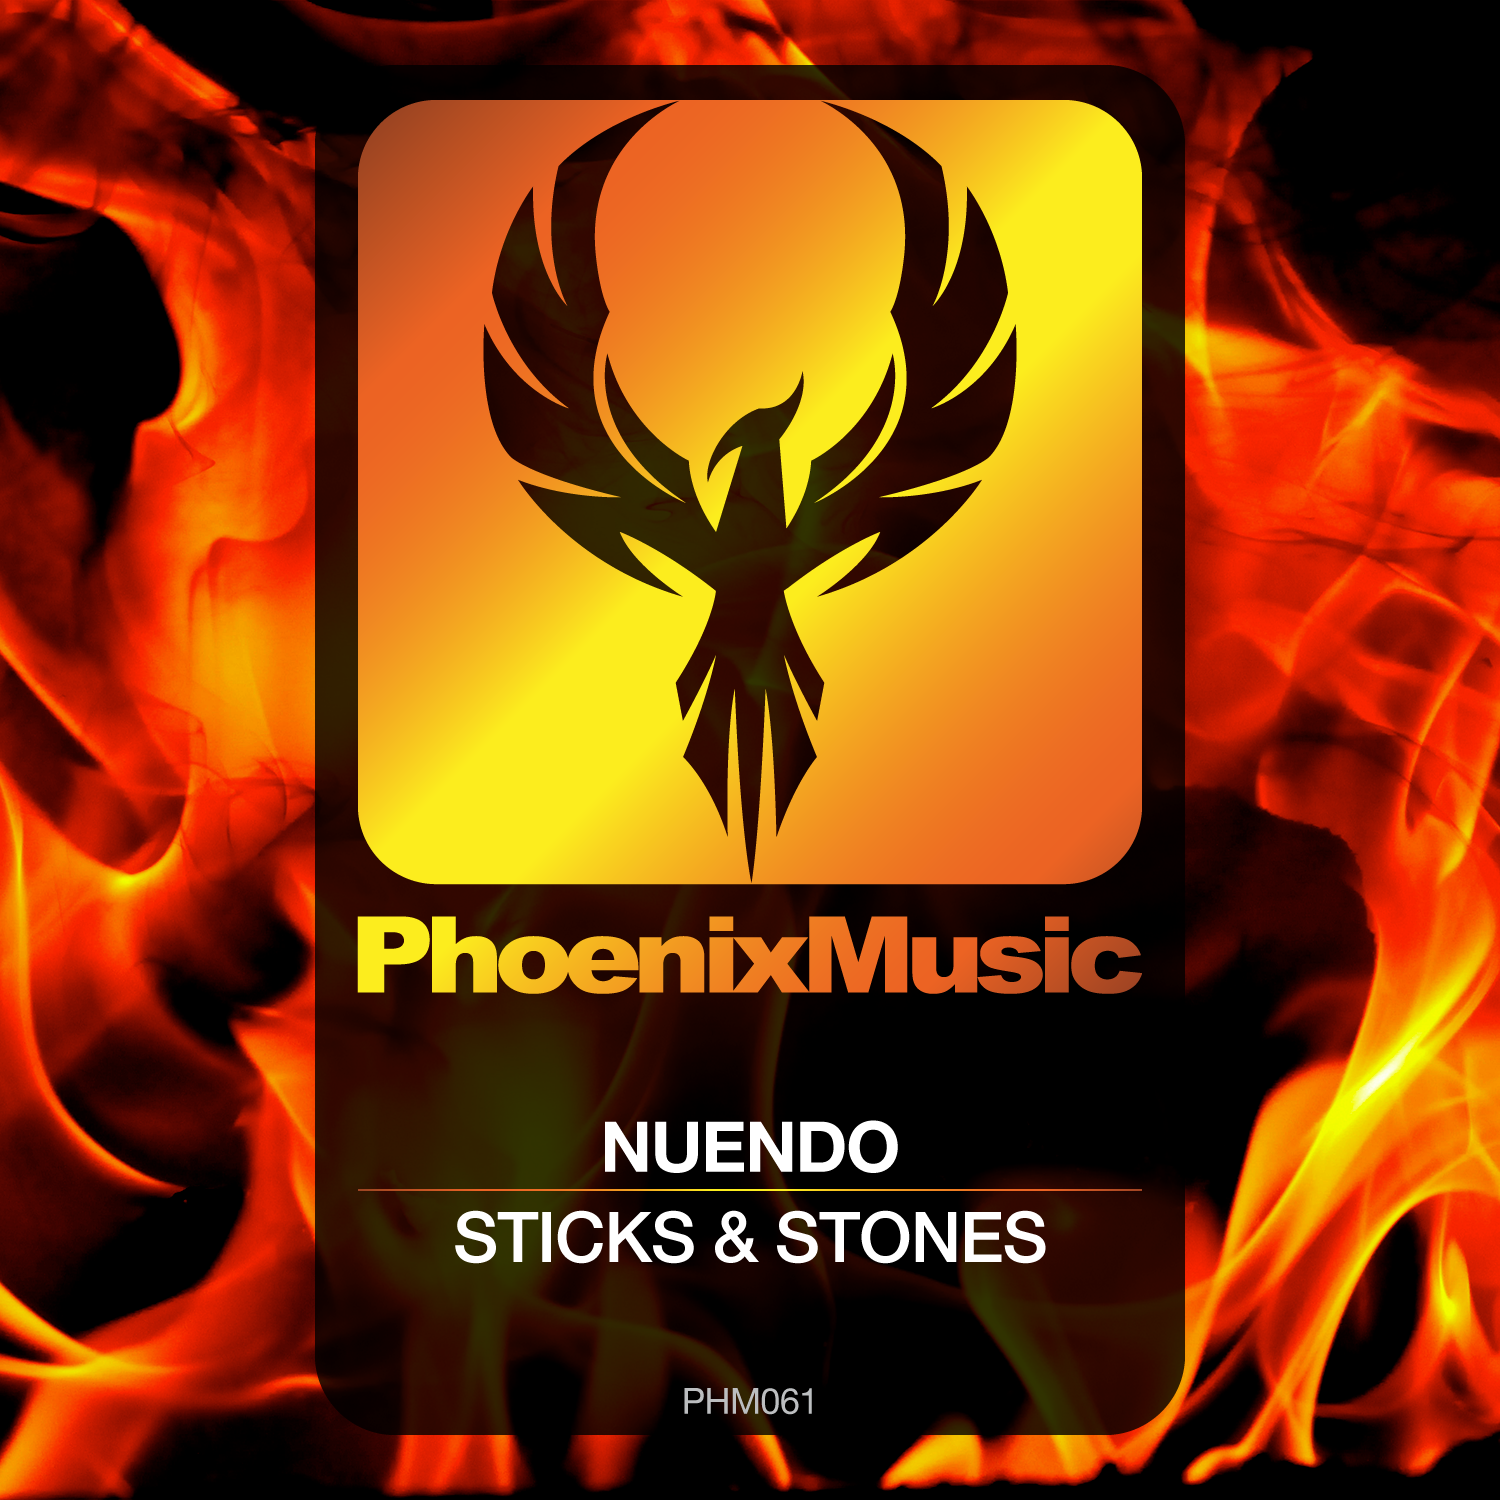 PHM061 Nuendo - Sticks & Stones [Phoenix Music]